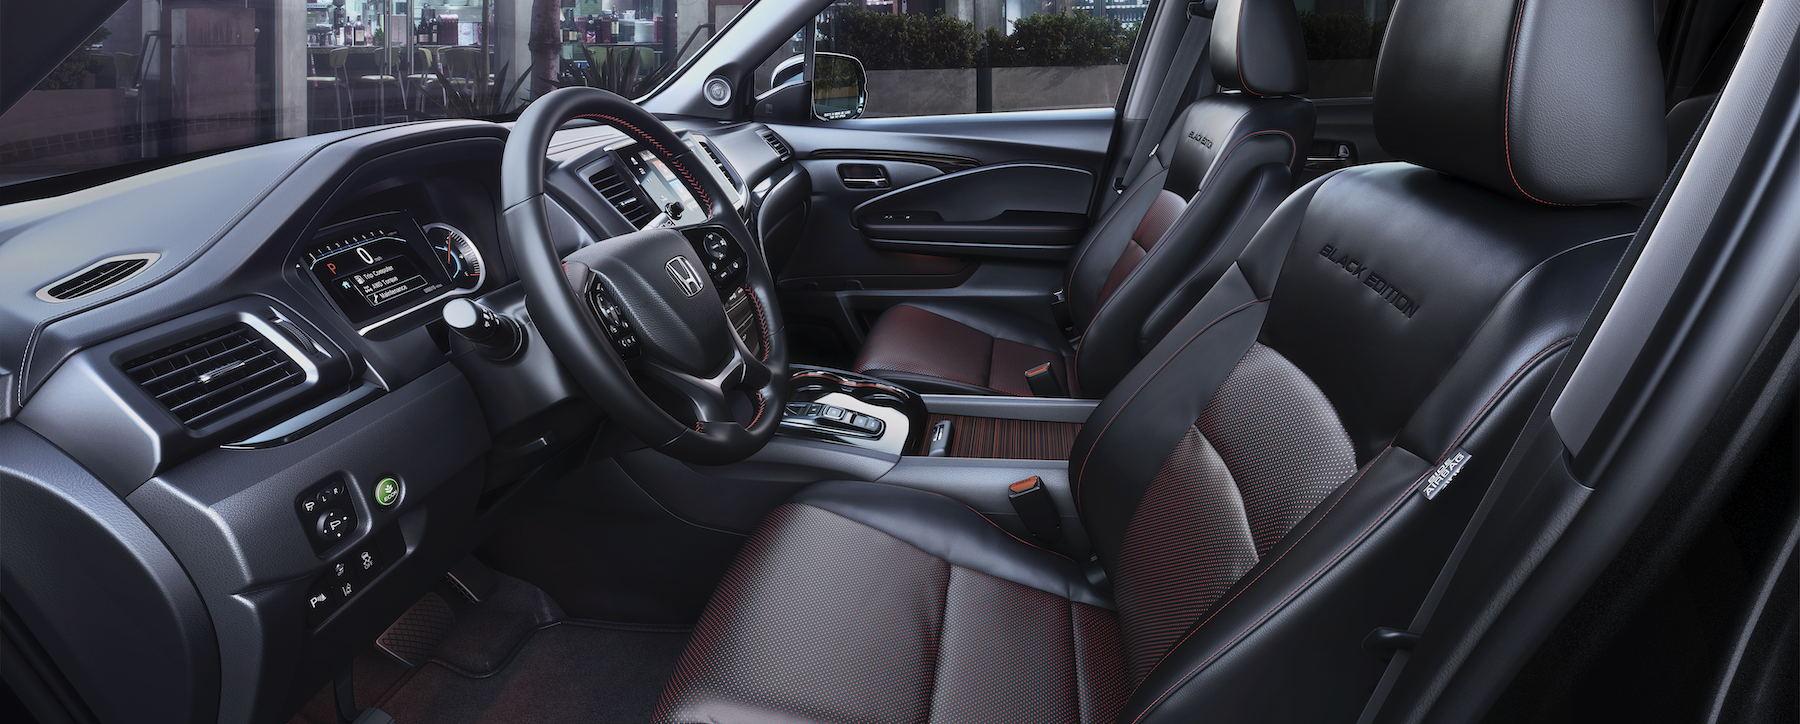 Model Features of the 2020 Honda Pilot at Jim Coleman in Maryland | 2020 honda pilot interior